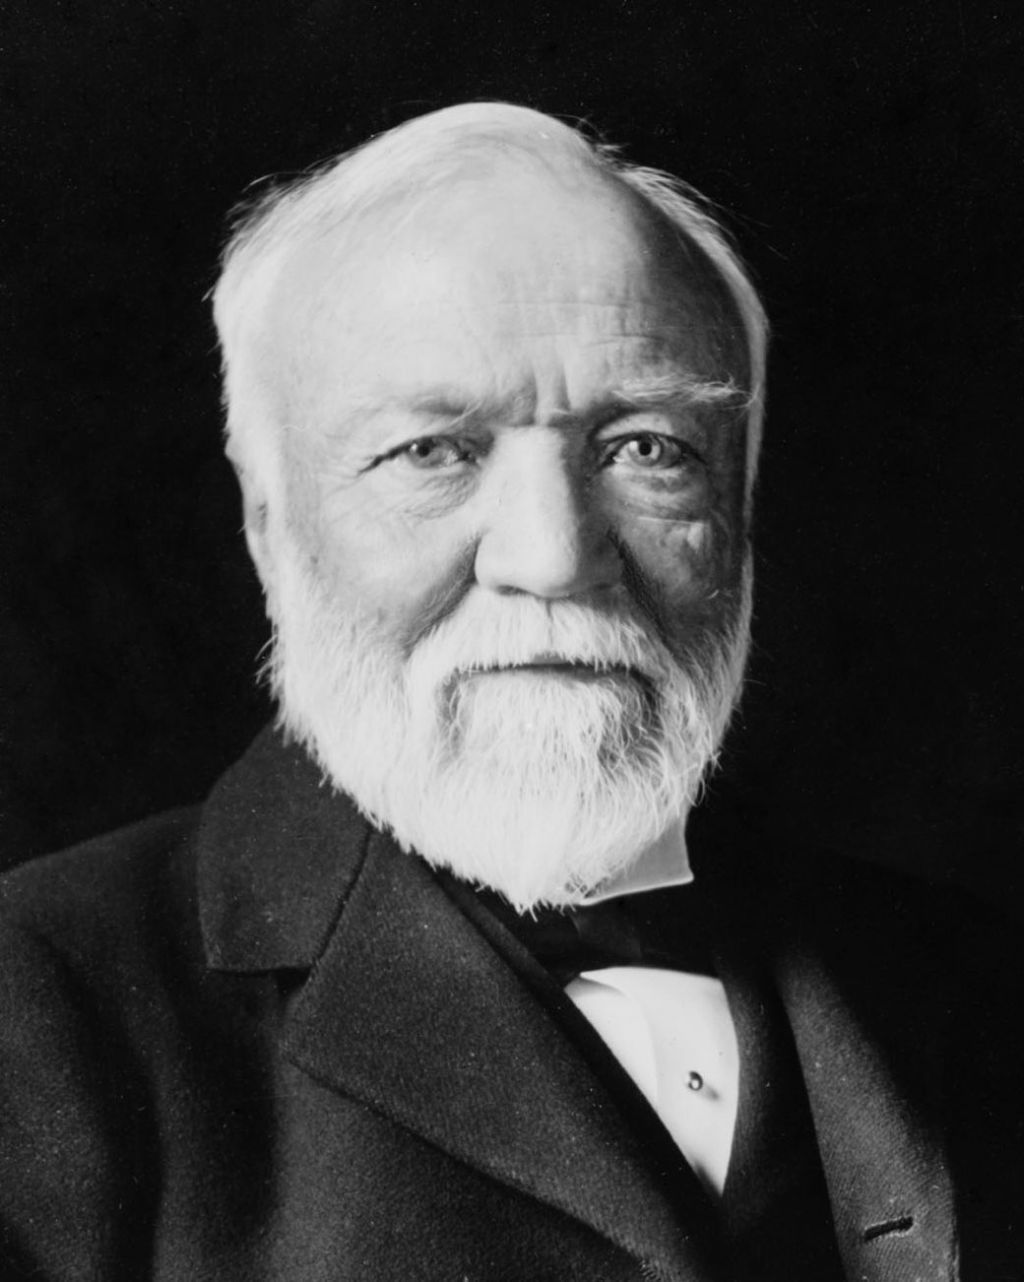 compare and contrast the attitudes of andrew carnegie eugene v andrew carnegie american businessman and philanthropist